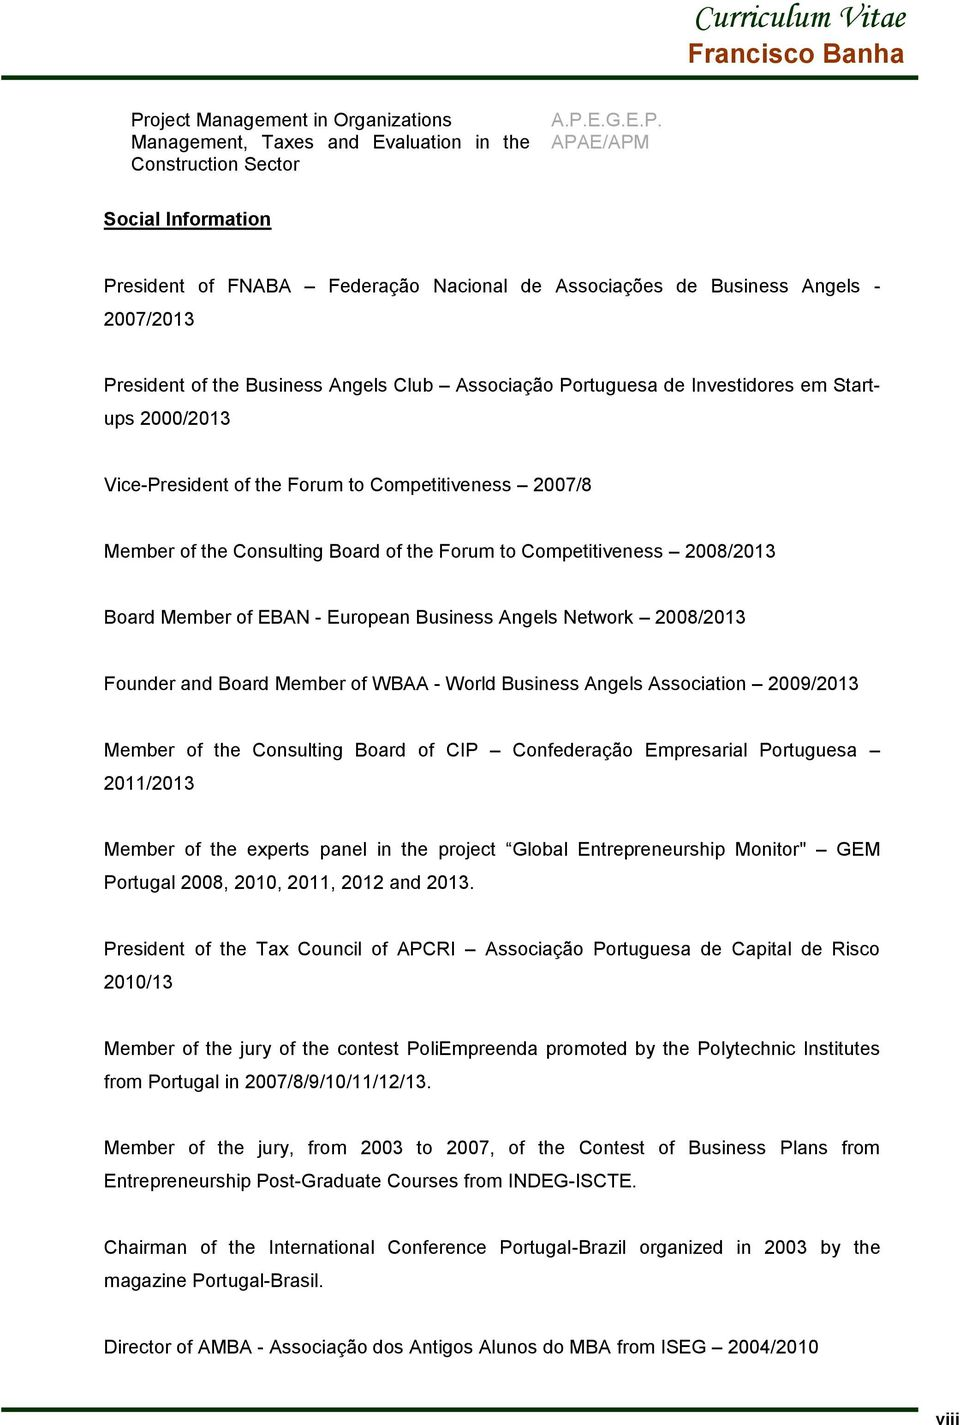 Consulting Board of the Forum to Competitiveness 2008/2013 Board Member of EBAN - European Business Angels Network 2008/2013 Founder and Board Member of WBAA - World Business Angels Association